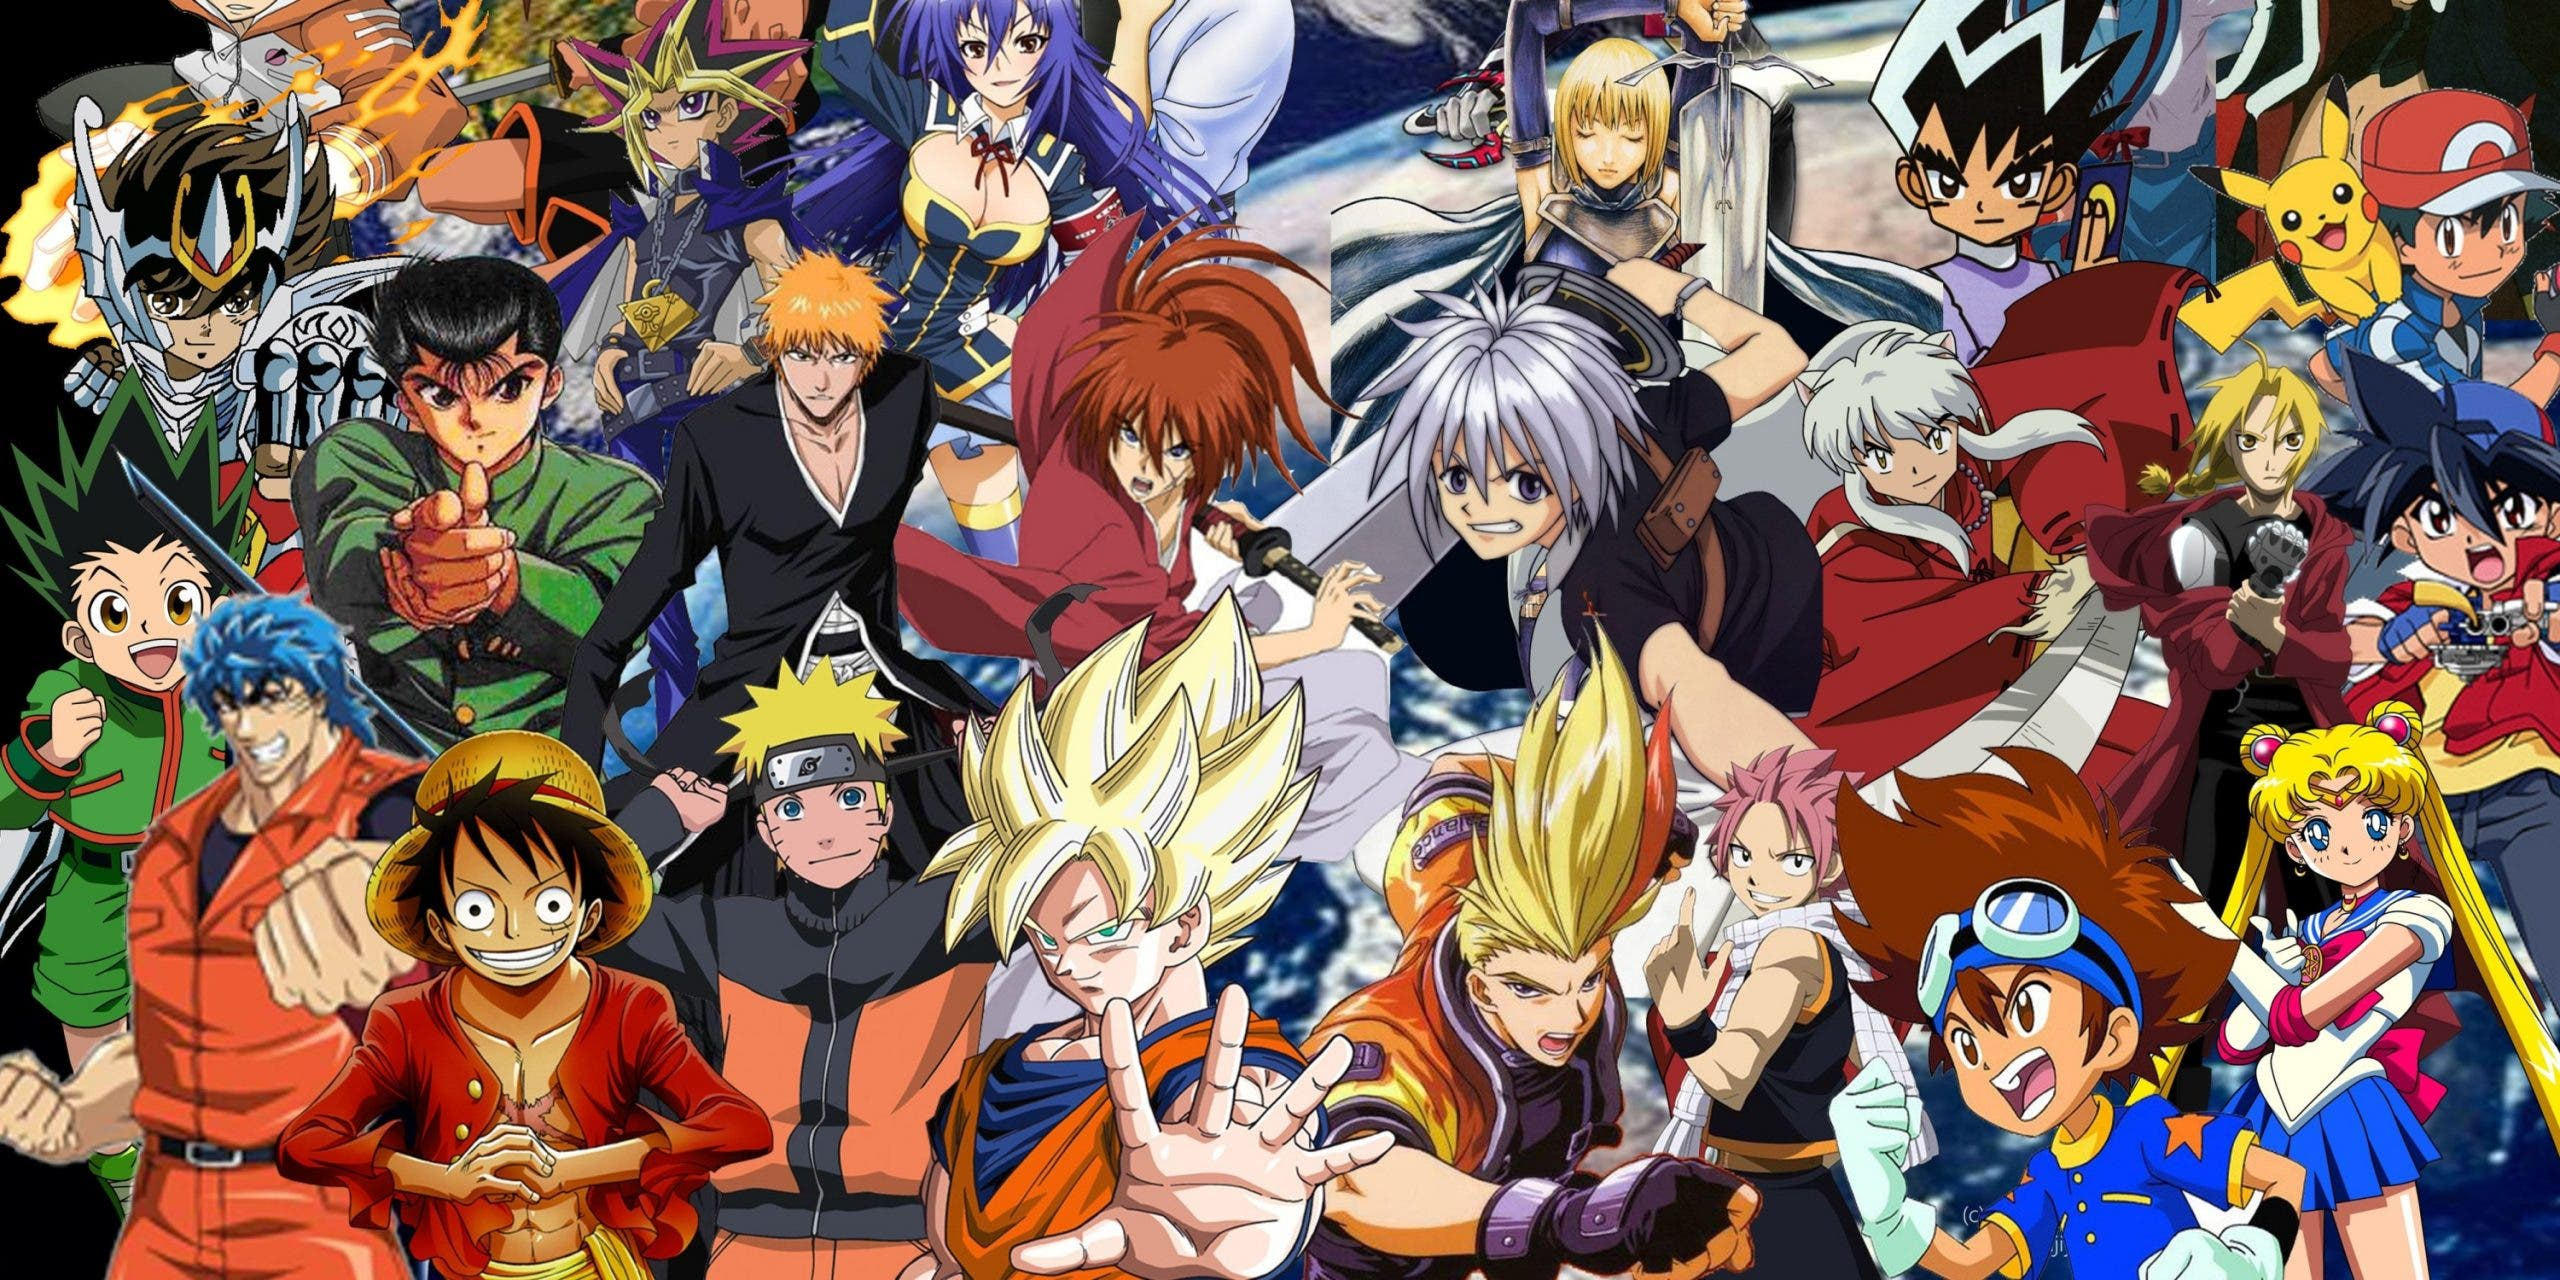 Montage of Anime Characters